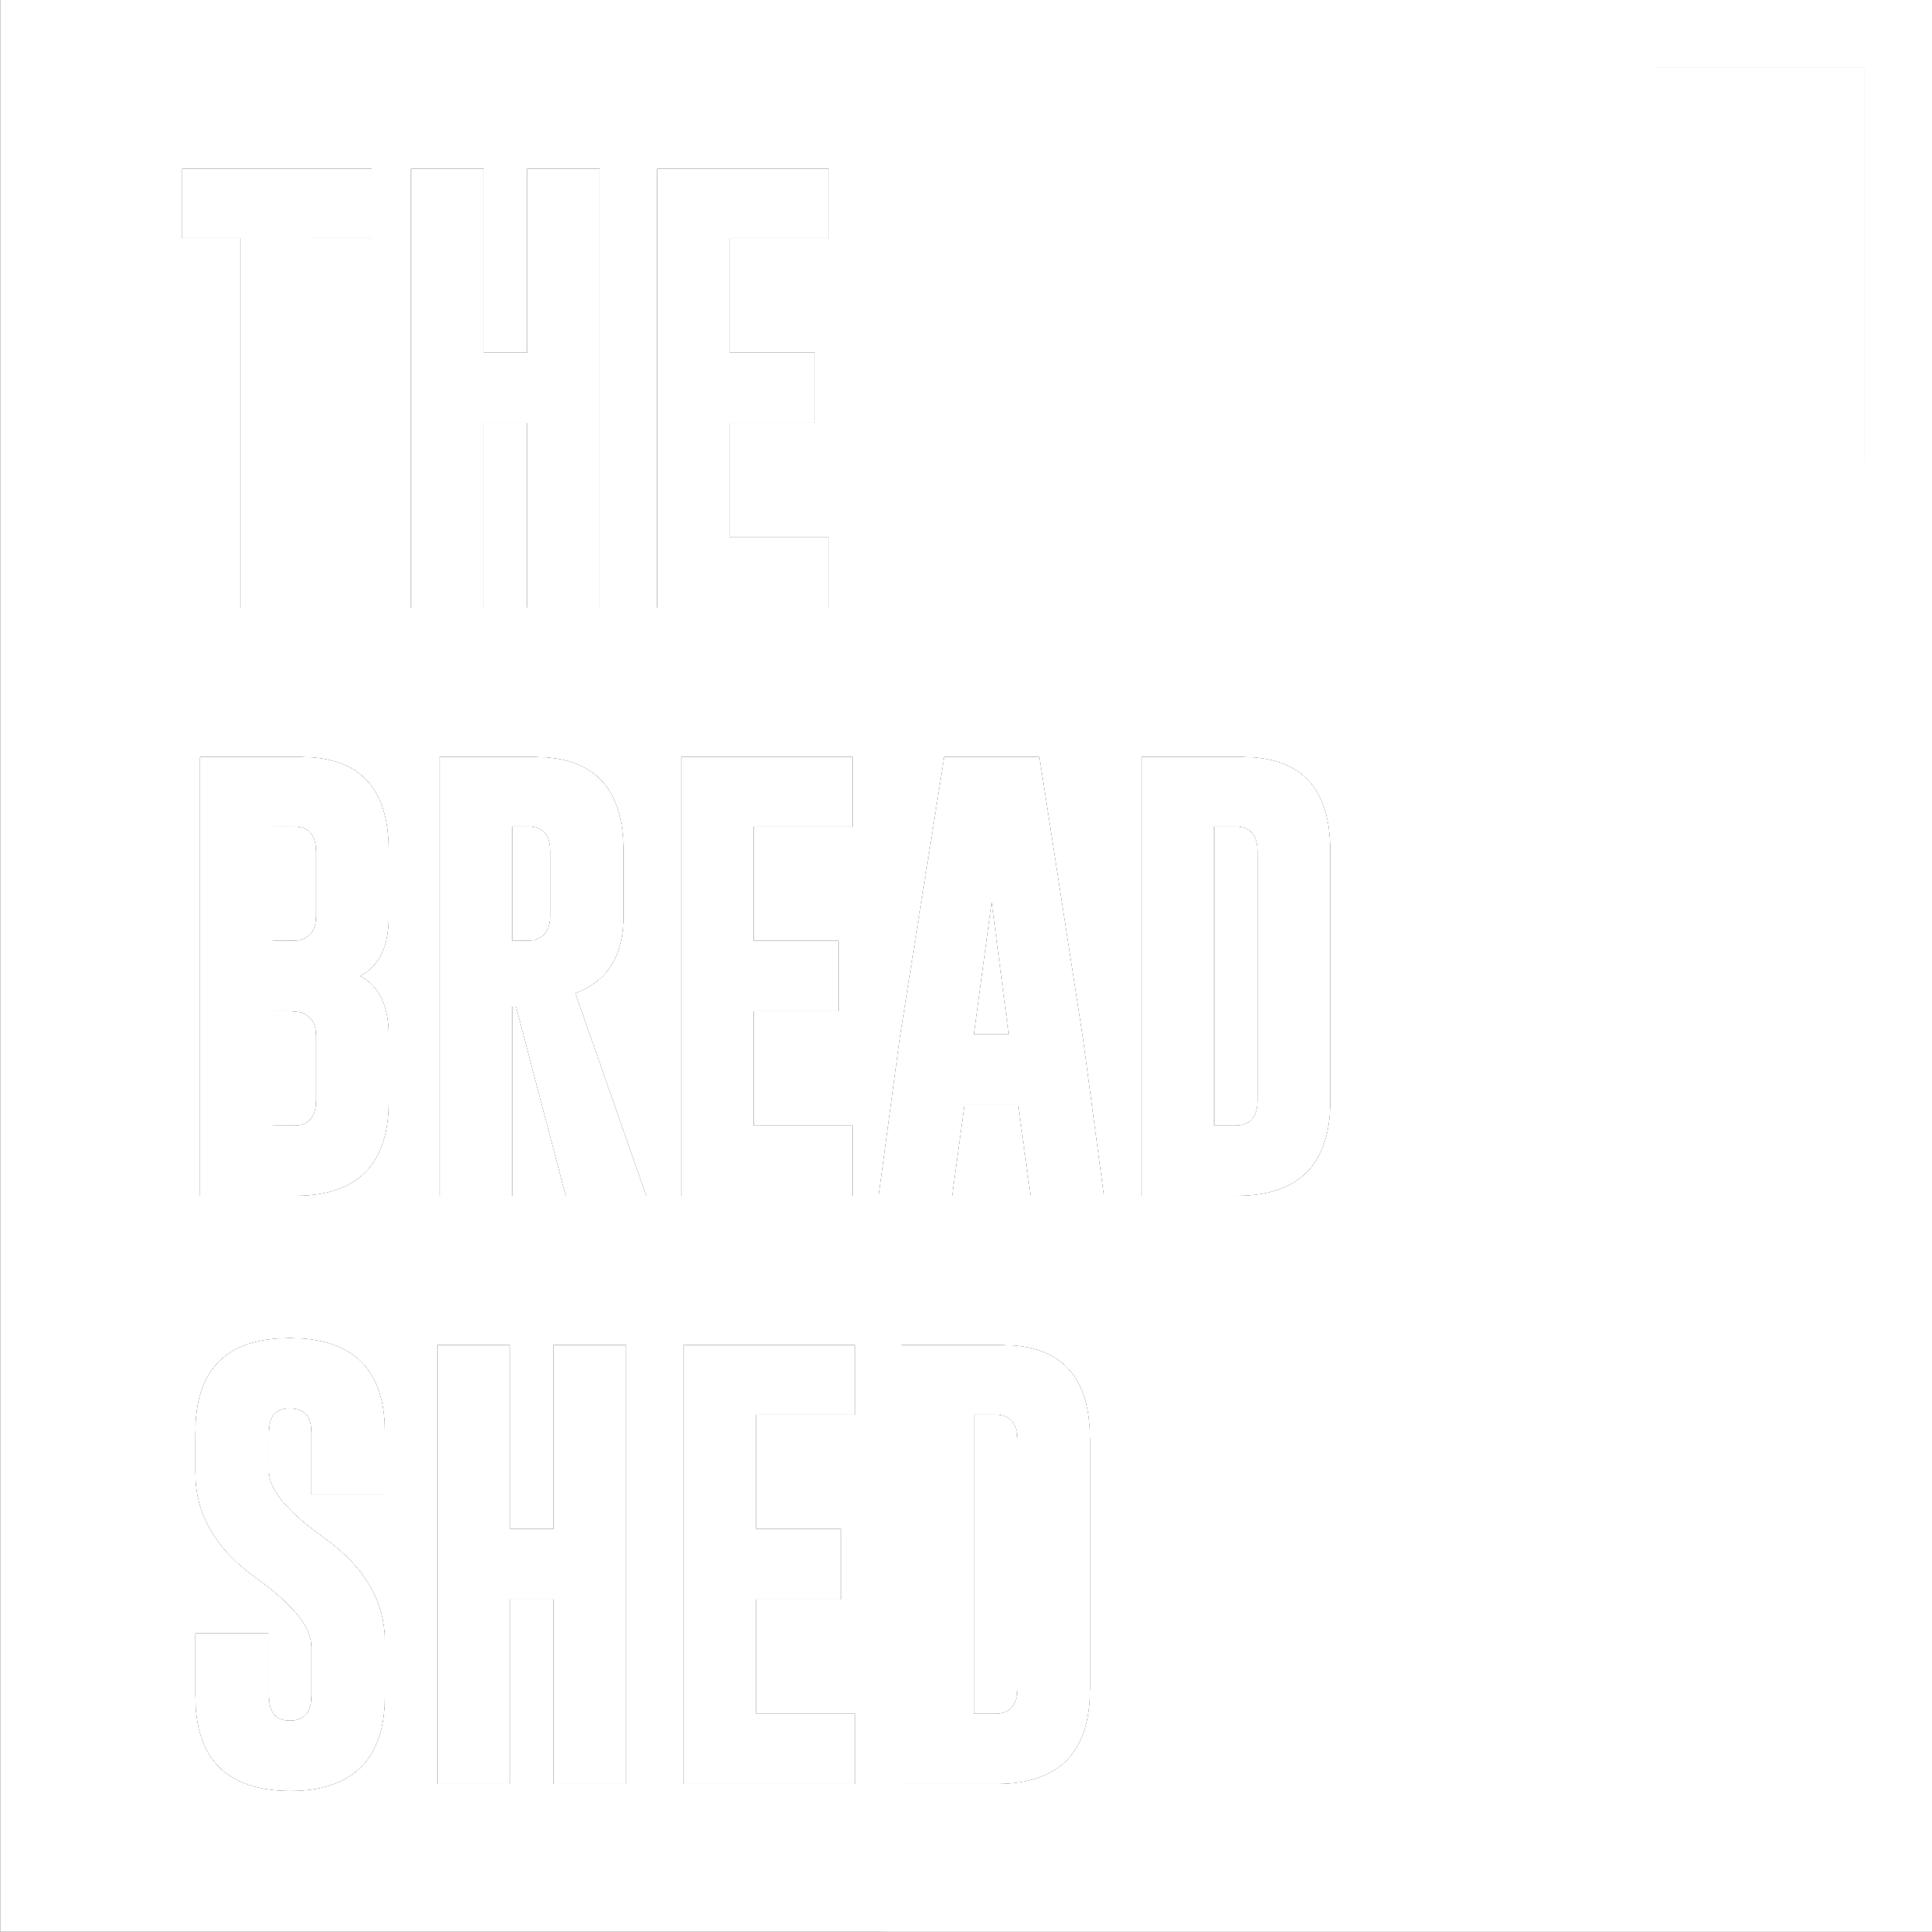 bread shed logo - former pub/zoo - manchester